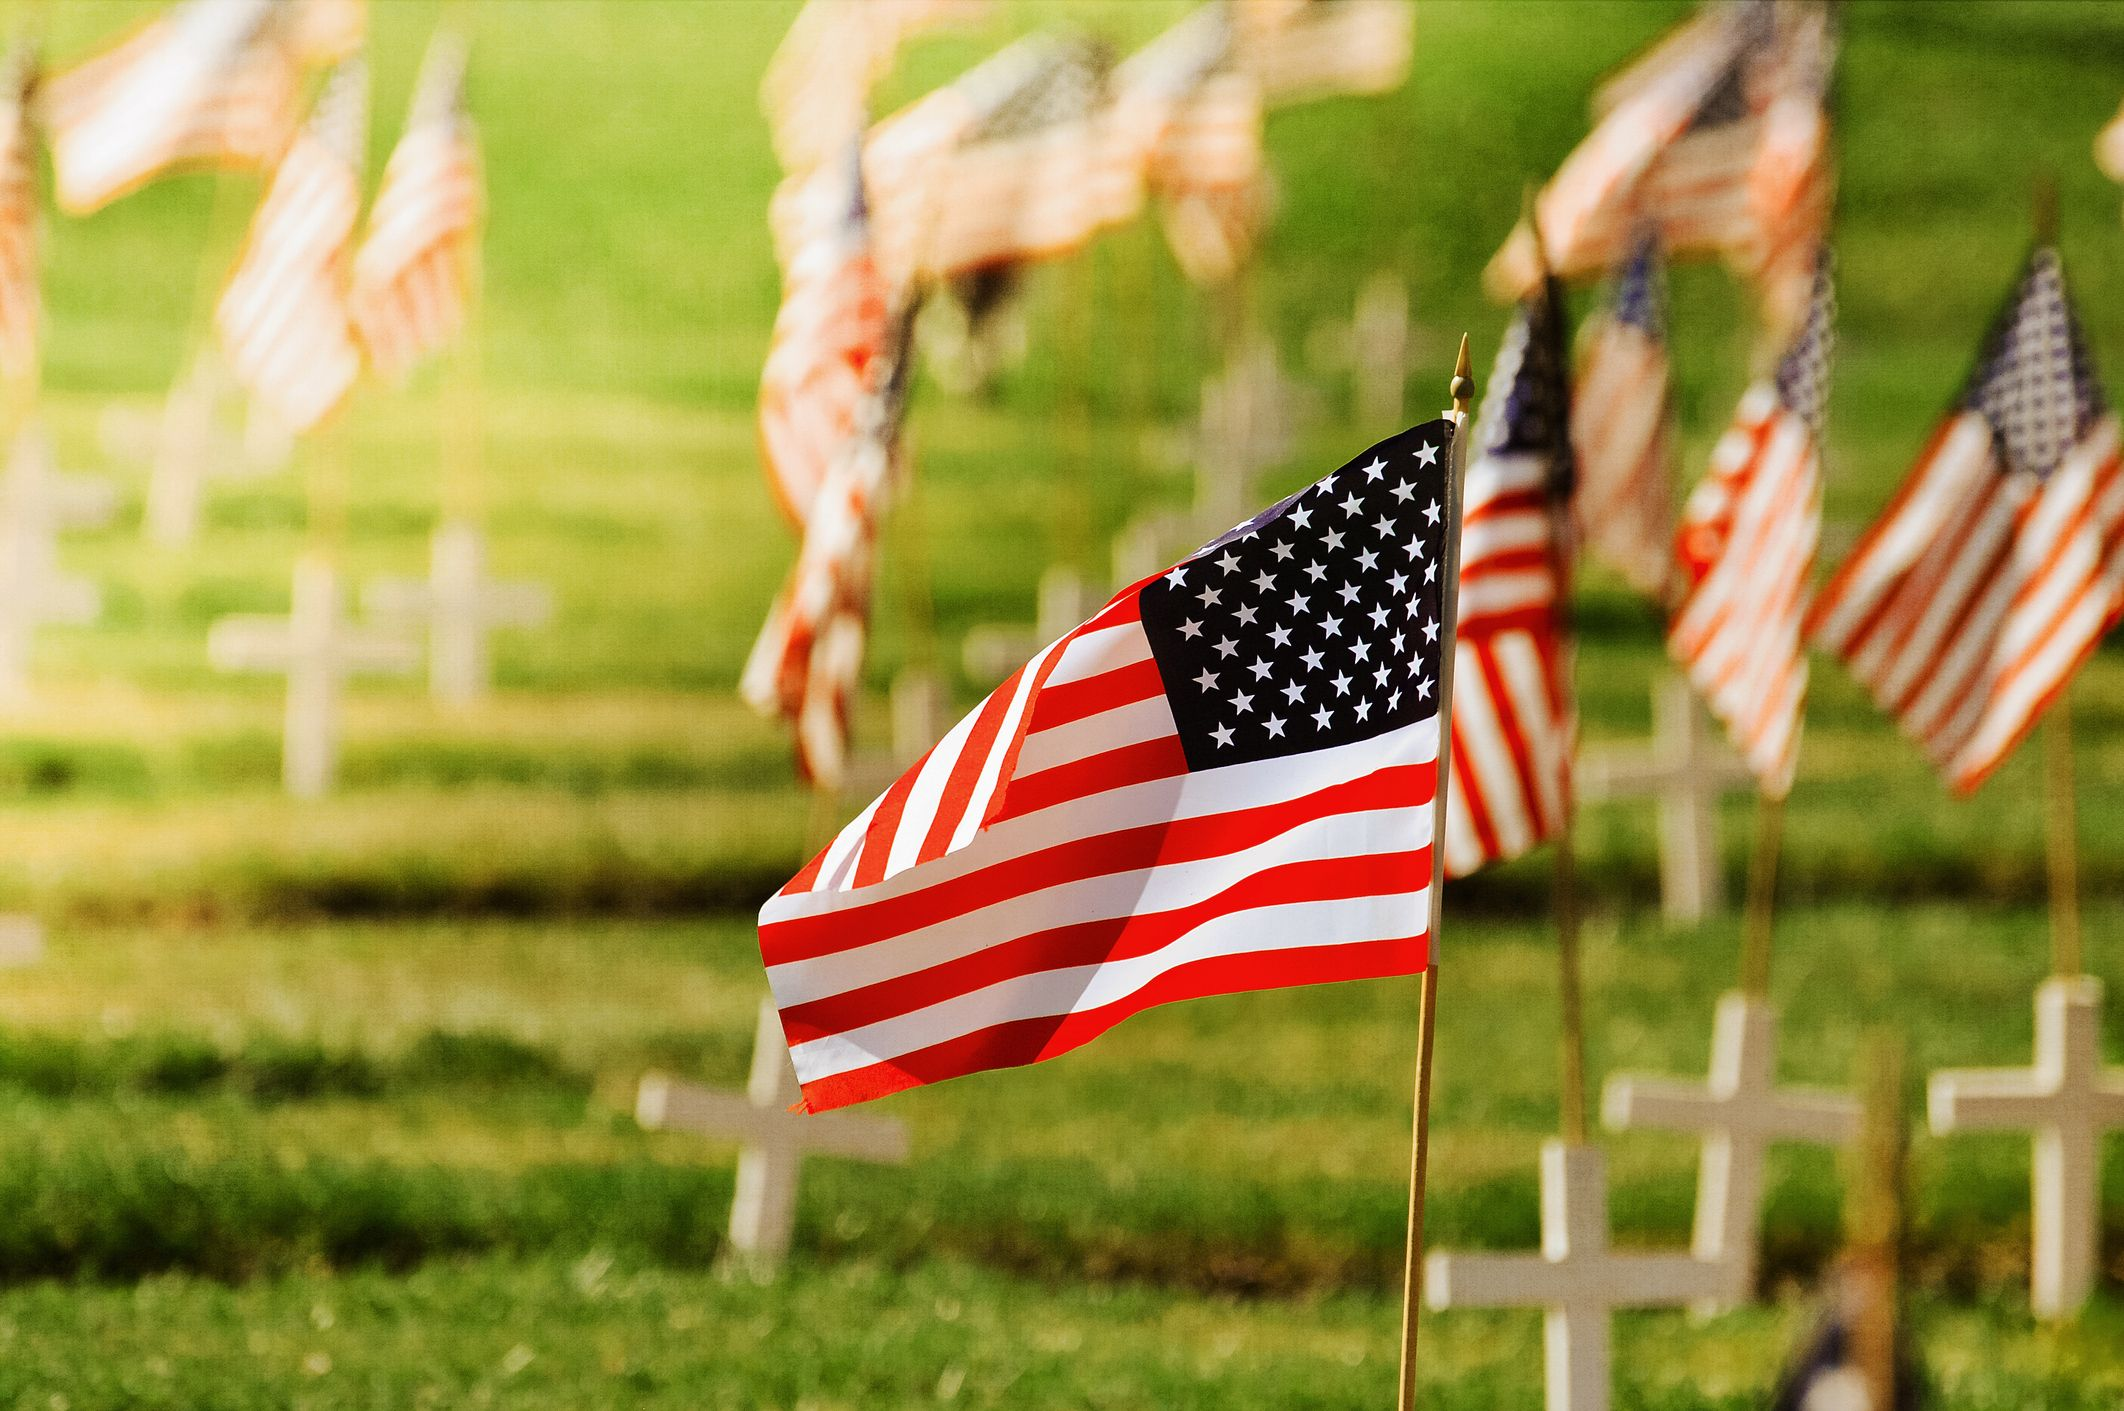 When Is Memorial Day Weekend 2020? - Memorial Day Meaning and History